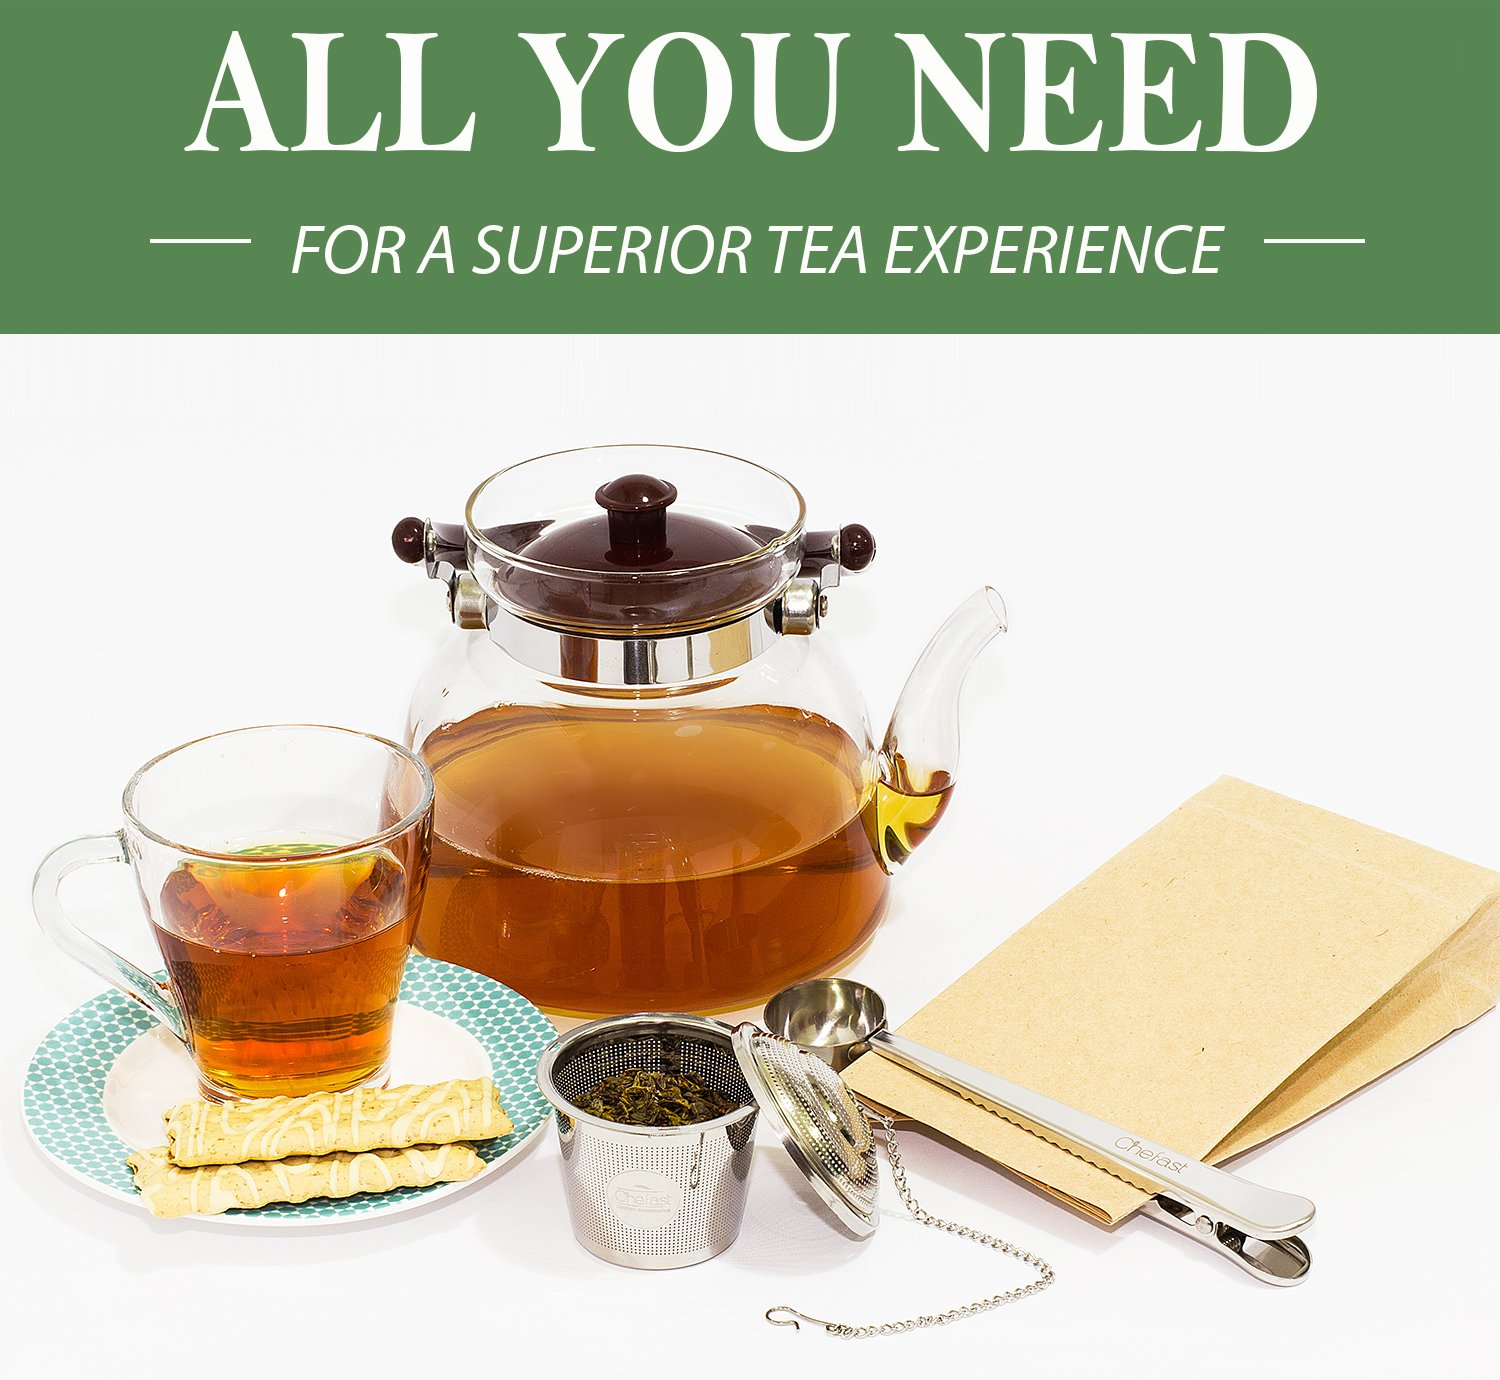 Tea Infuser Set by Chefast (2+1 Pack) - Combo Kit of 1 Large and 2 Single Cup Loose Leaf Infusers, Plus Metal Scoop with Clip - Reusable Stainless Steel Strainers | Diffusers | Balls | Steepers by Chefast (Image #6)